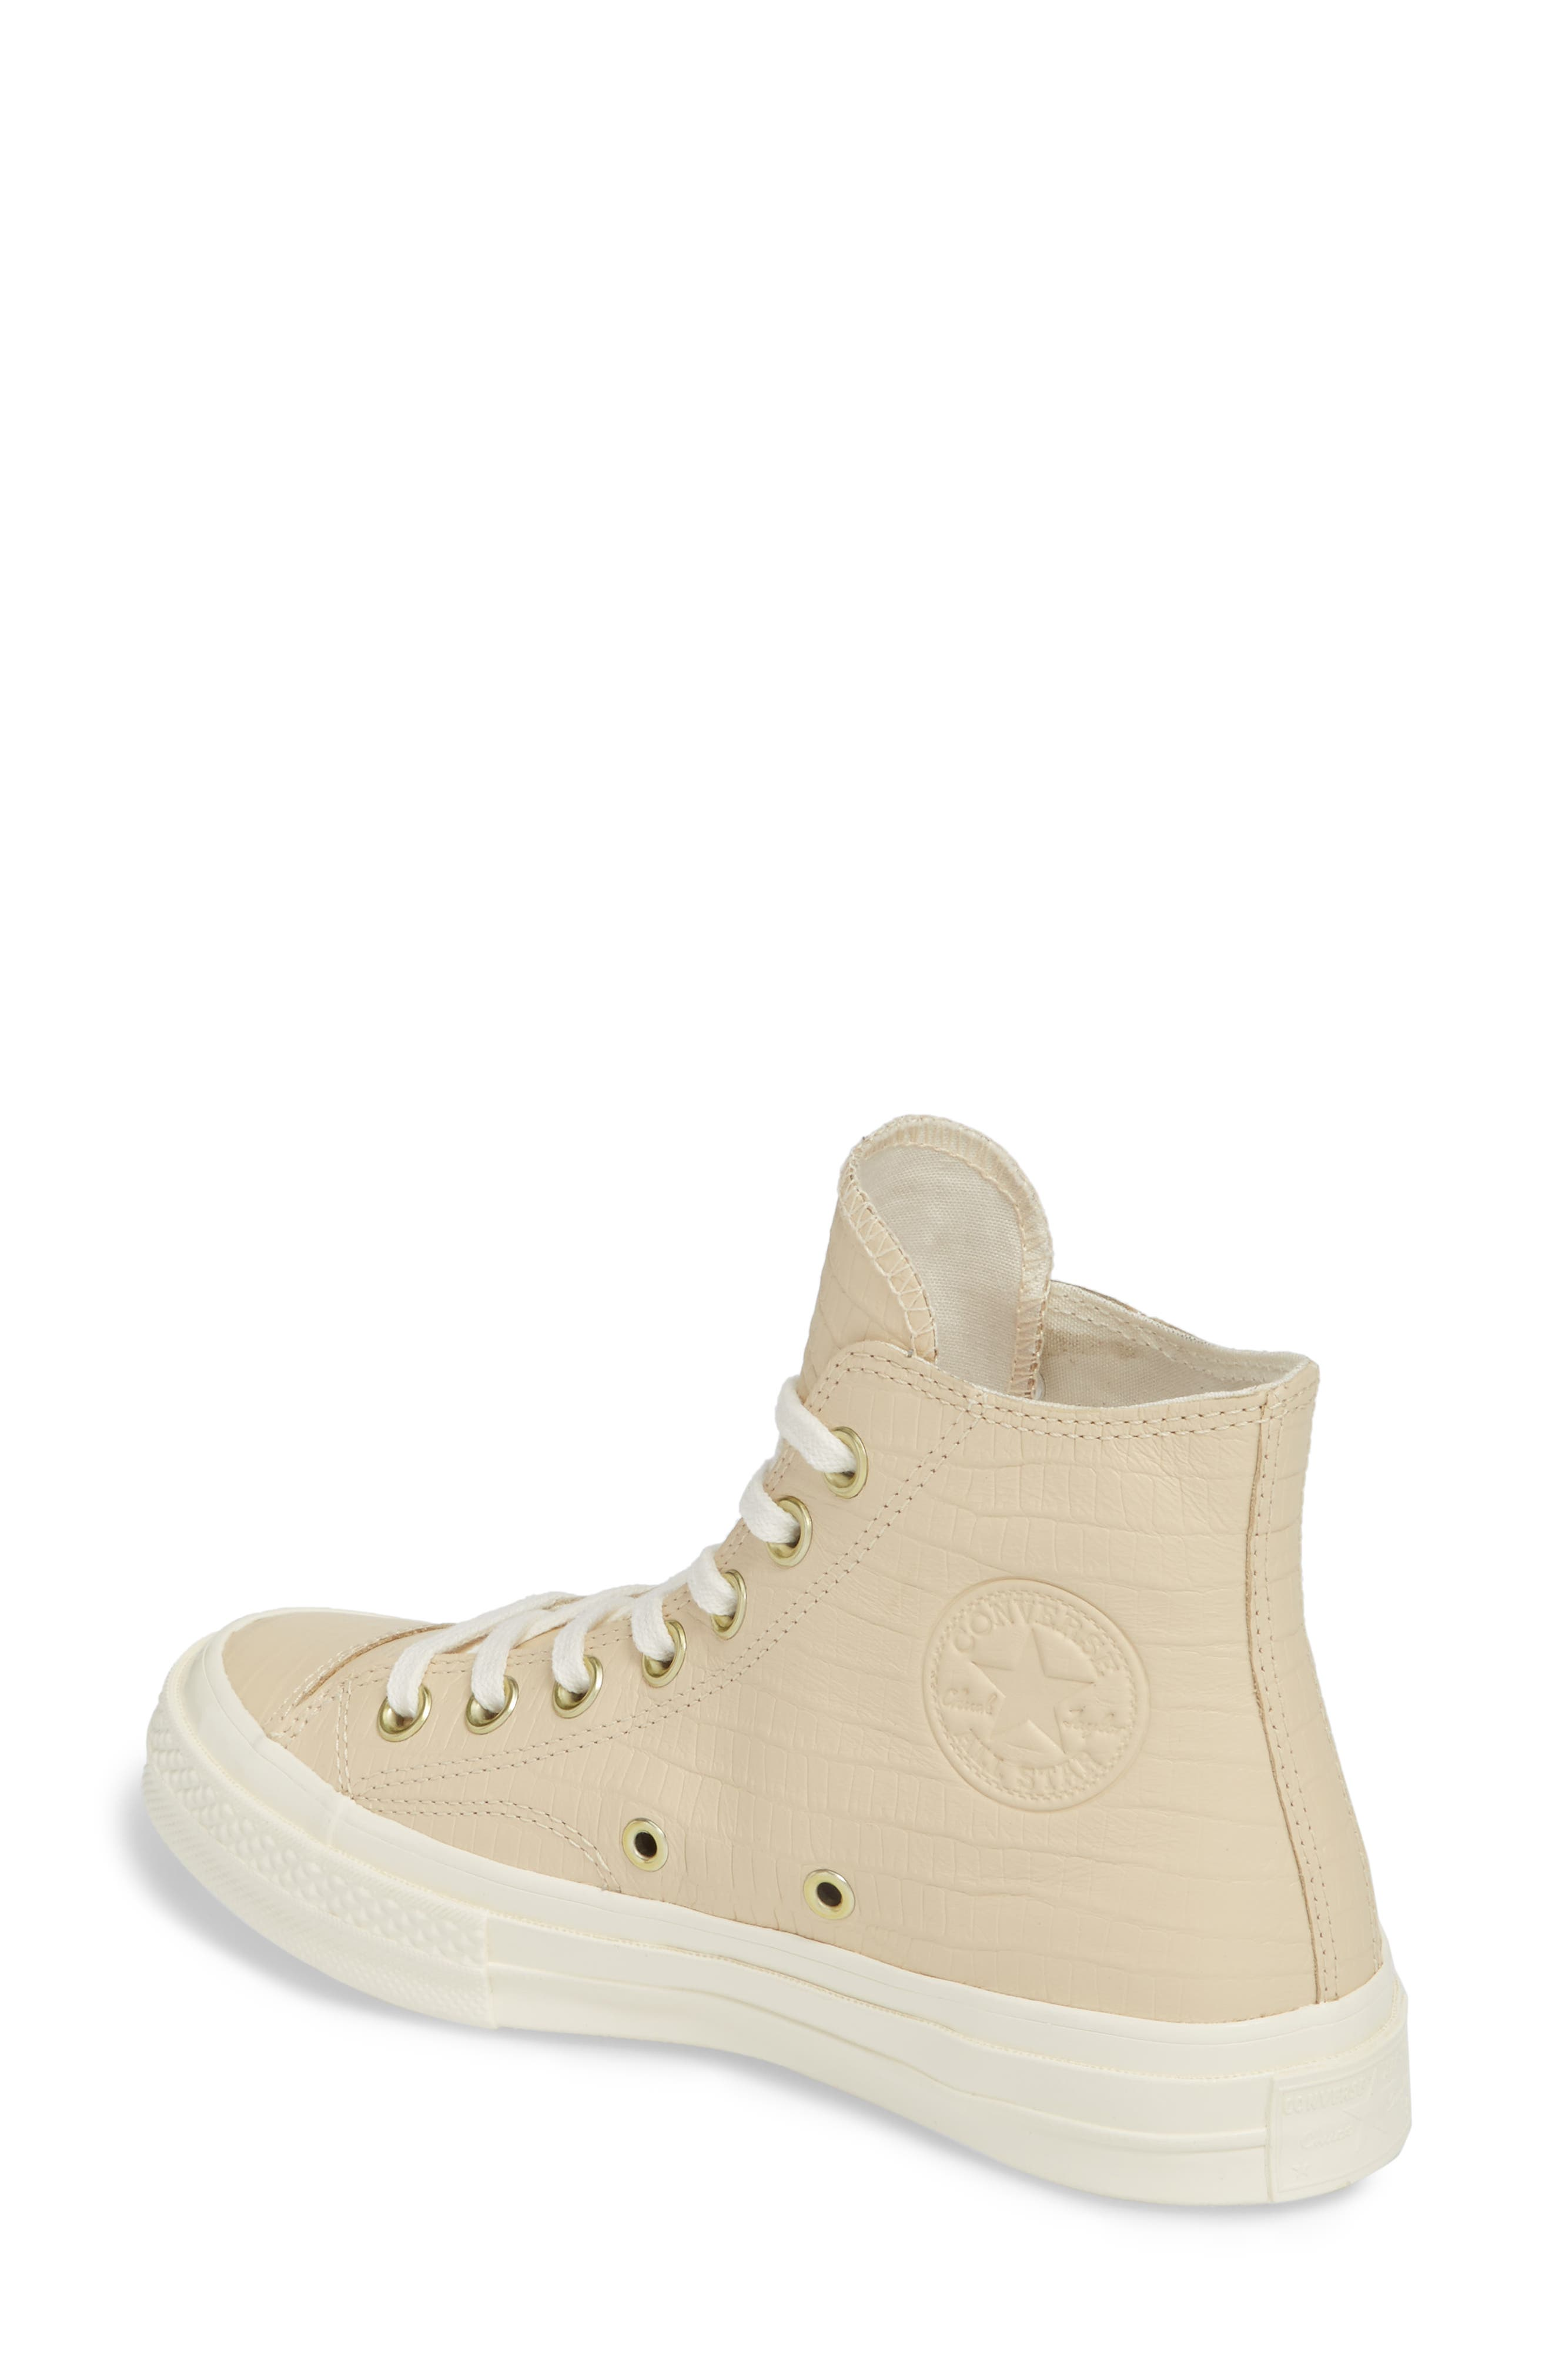 Chuck Taylor<sup>®</sup> All Star<sup>®</sup> CT 70 Reptile High Top Sneaker,                             Alternate thumbnail 2, color,                             Light Twine